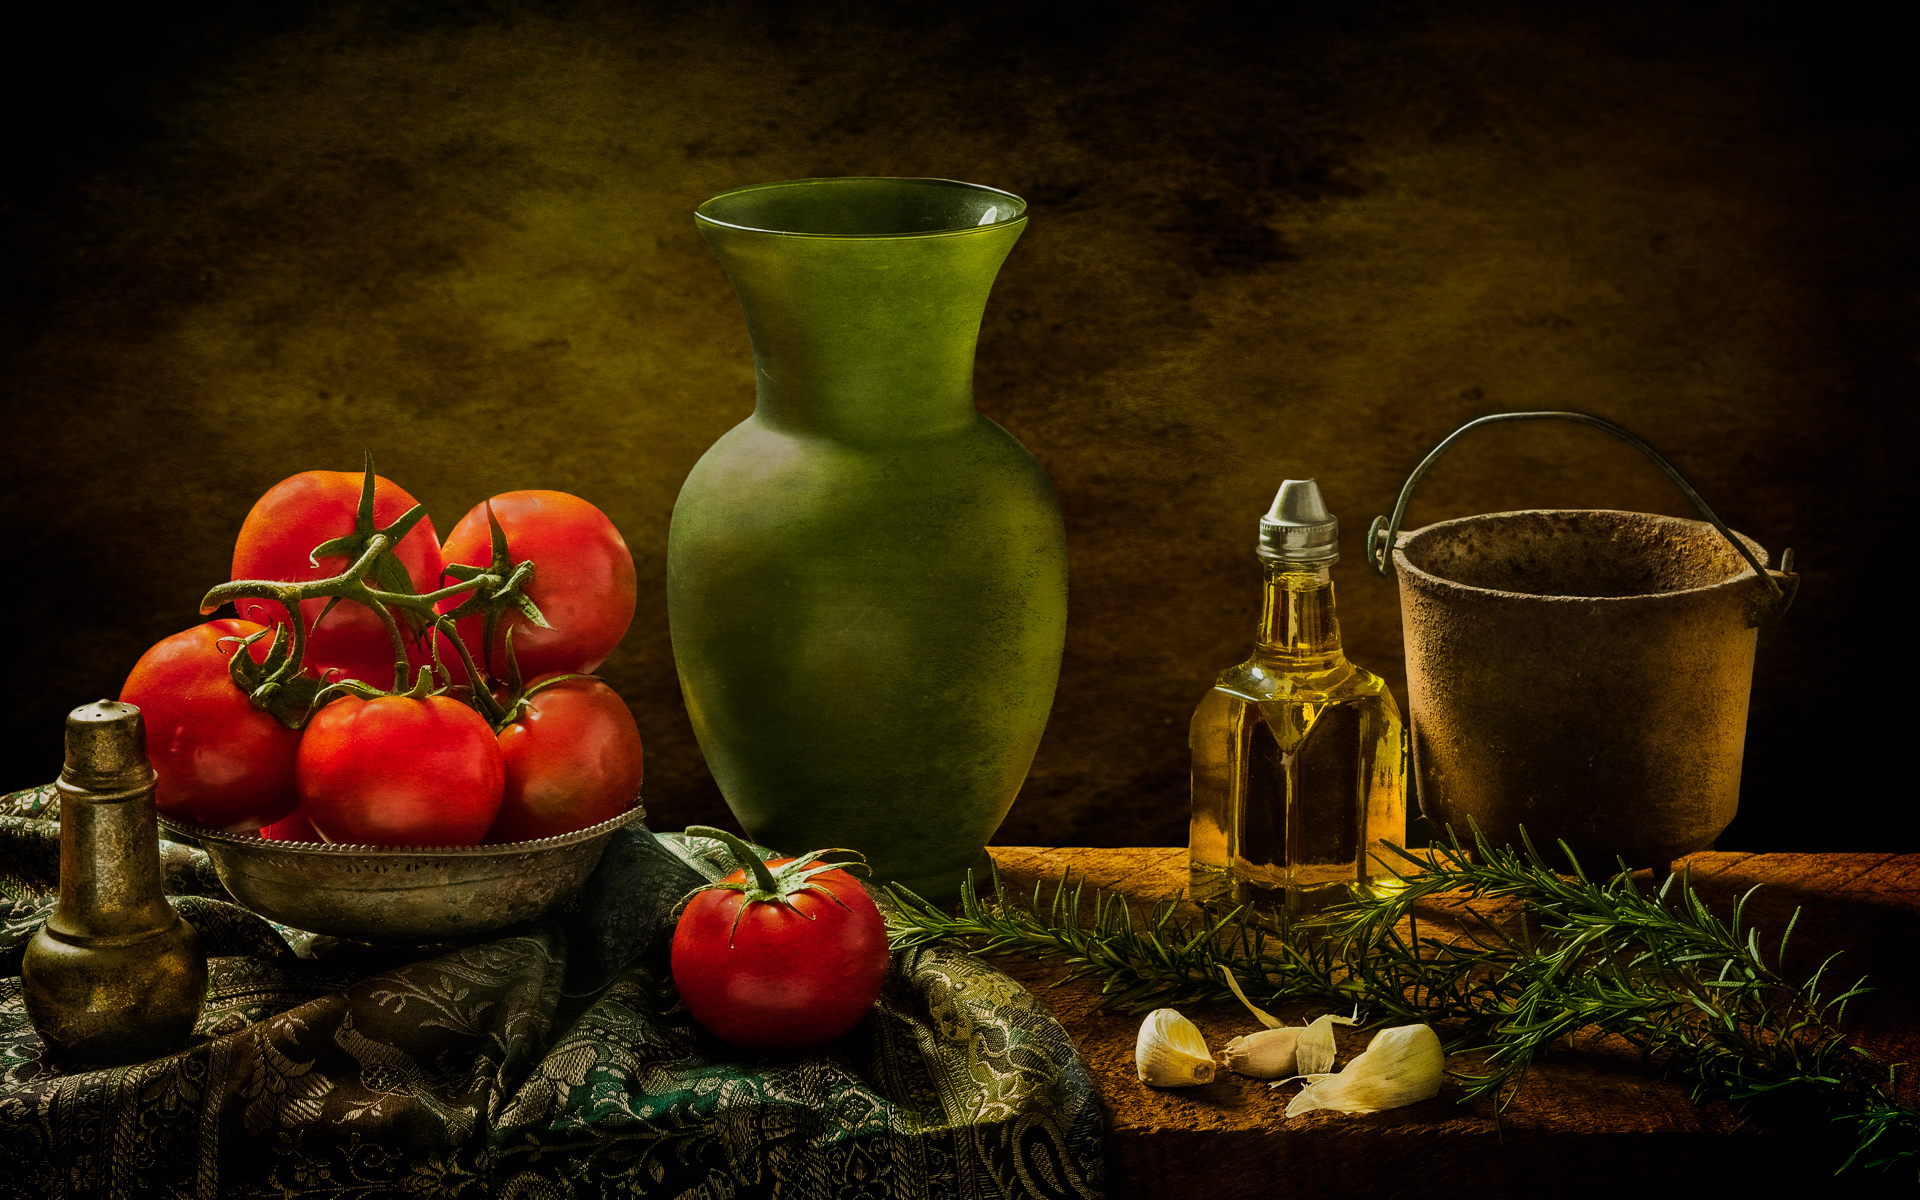 Still Life with Tomatoes - Still Life Photography